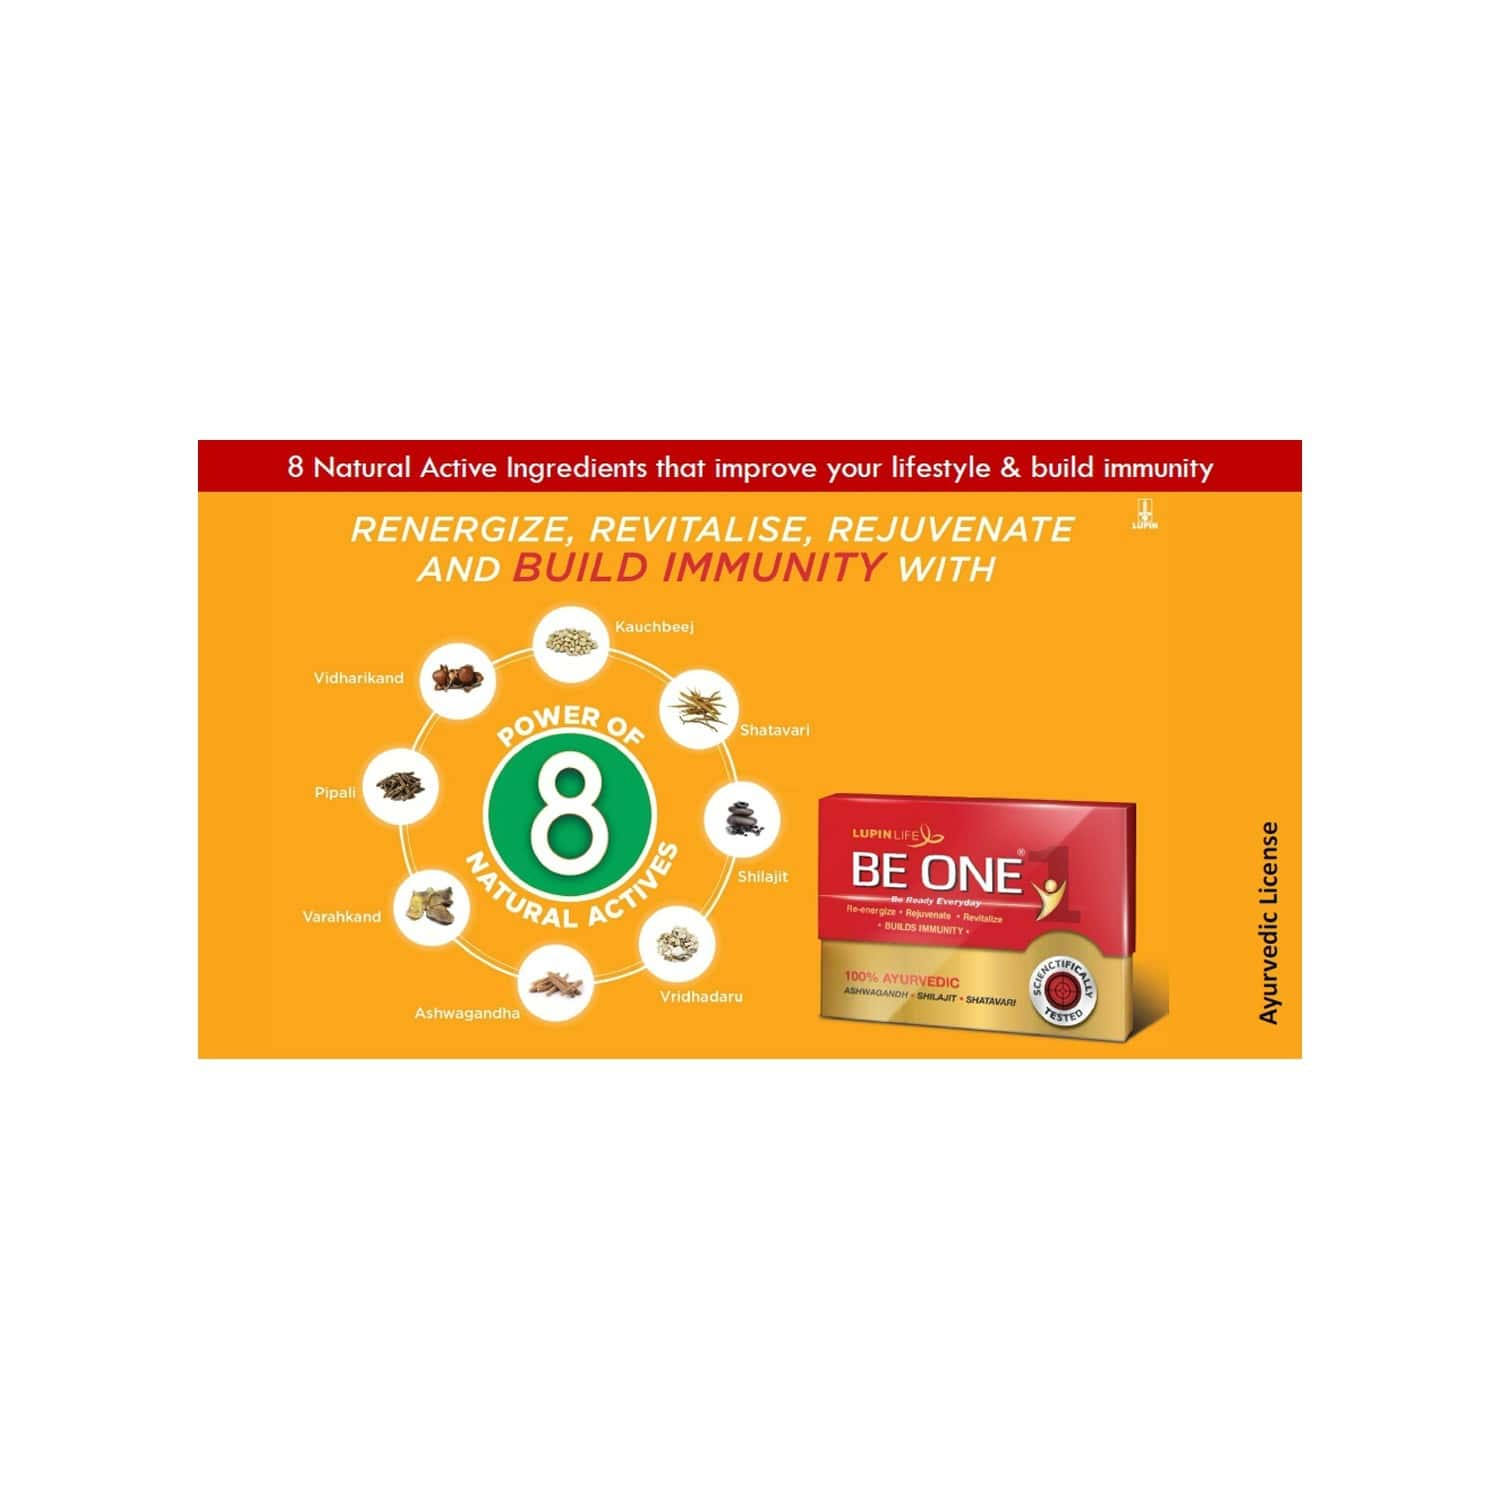 Be One 100% Ayurvedic Energy And Immunity Supplement - 10 Tablets